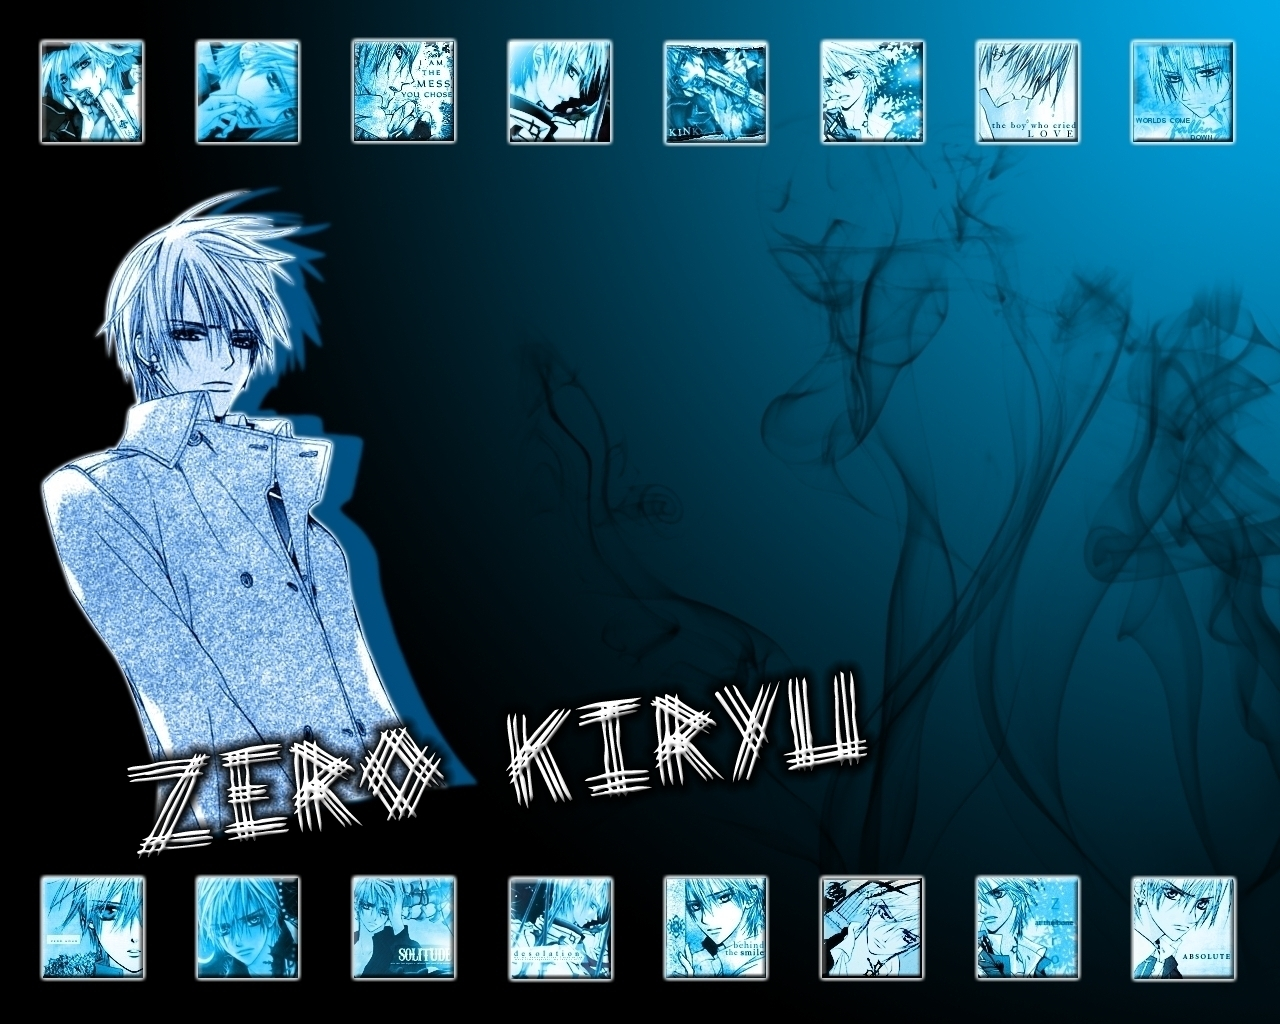 Zero Kiryu - Vampire Knight Wallpaper (14240779) - Fanpop